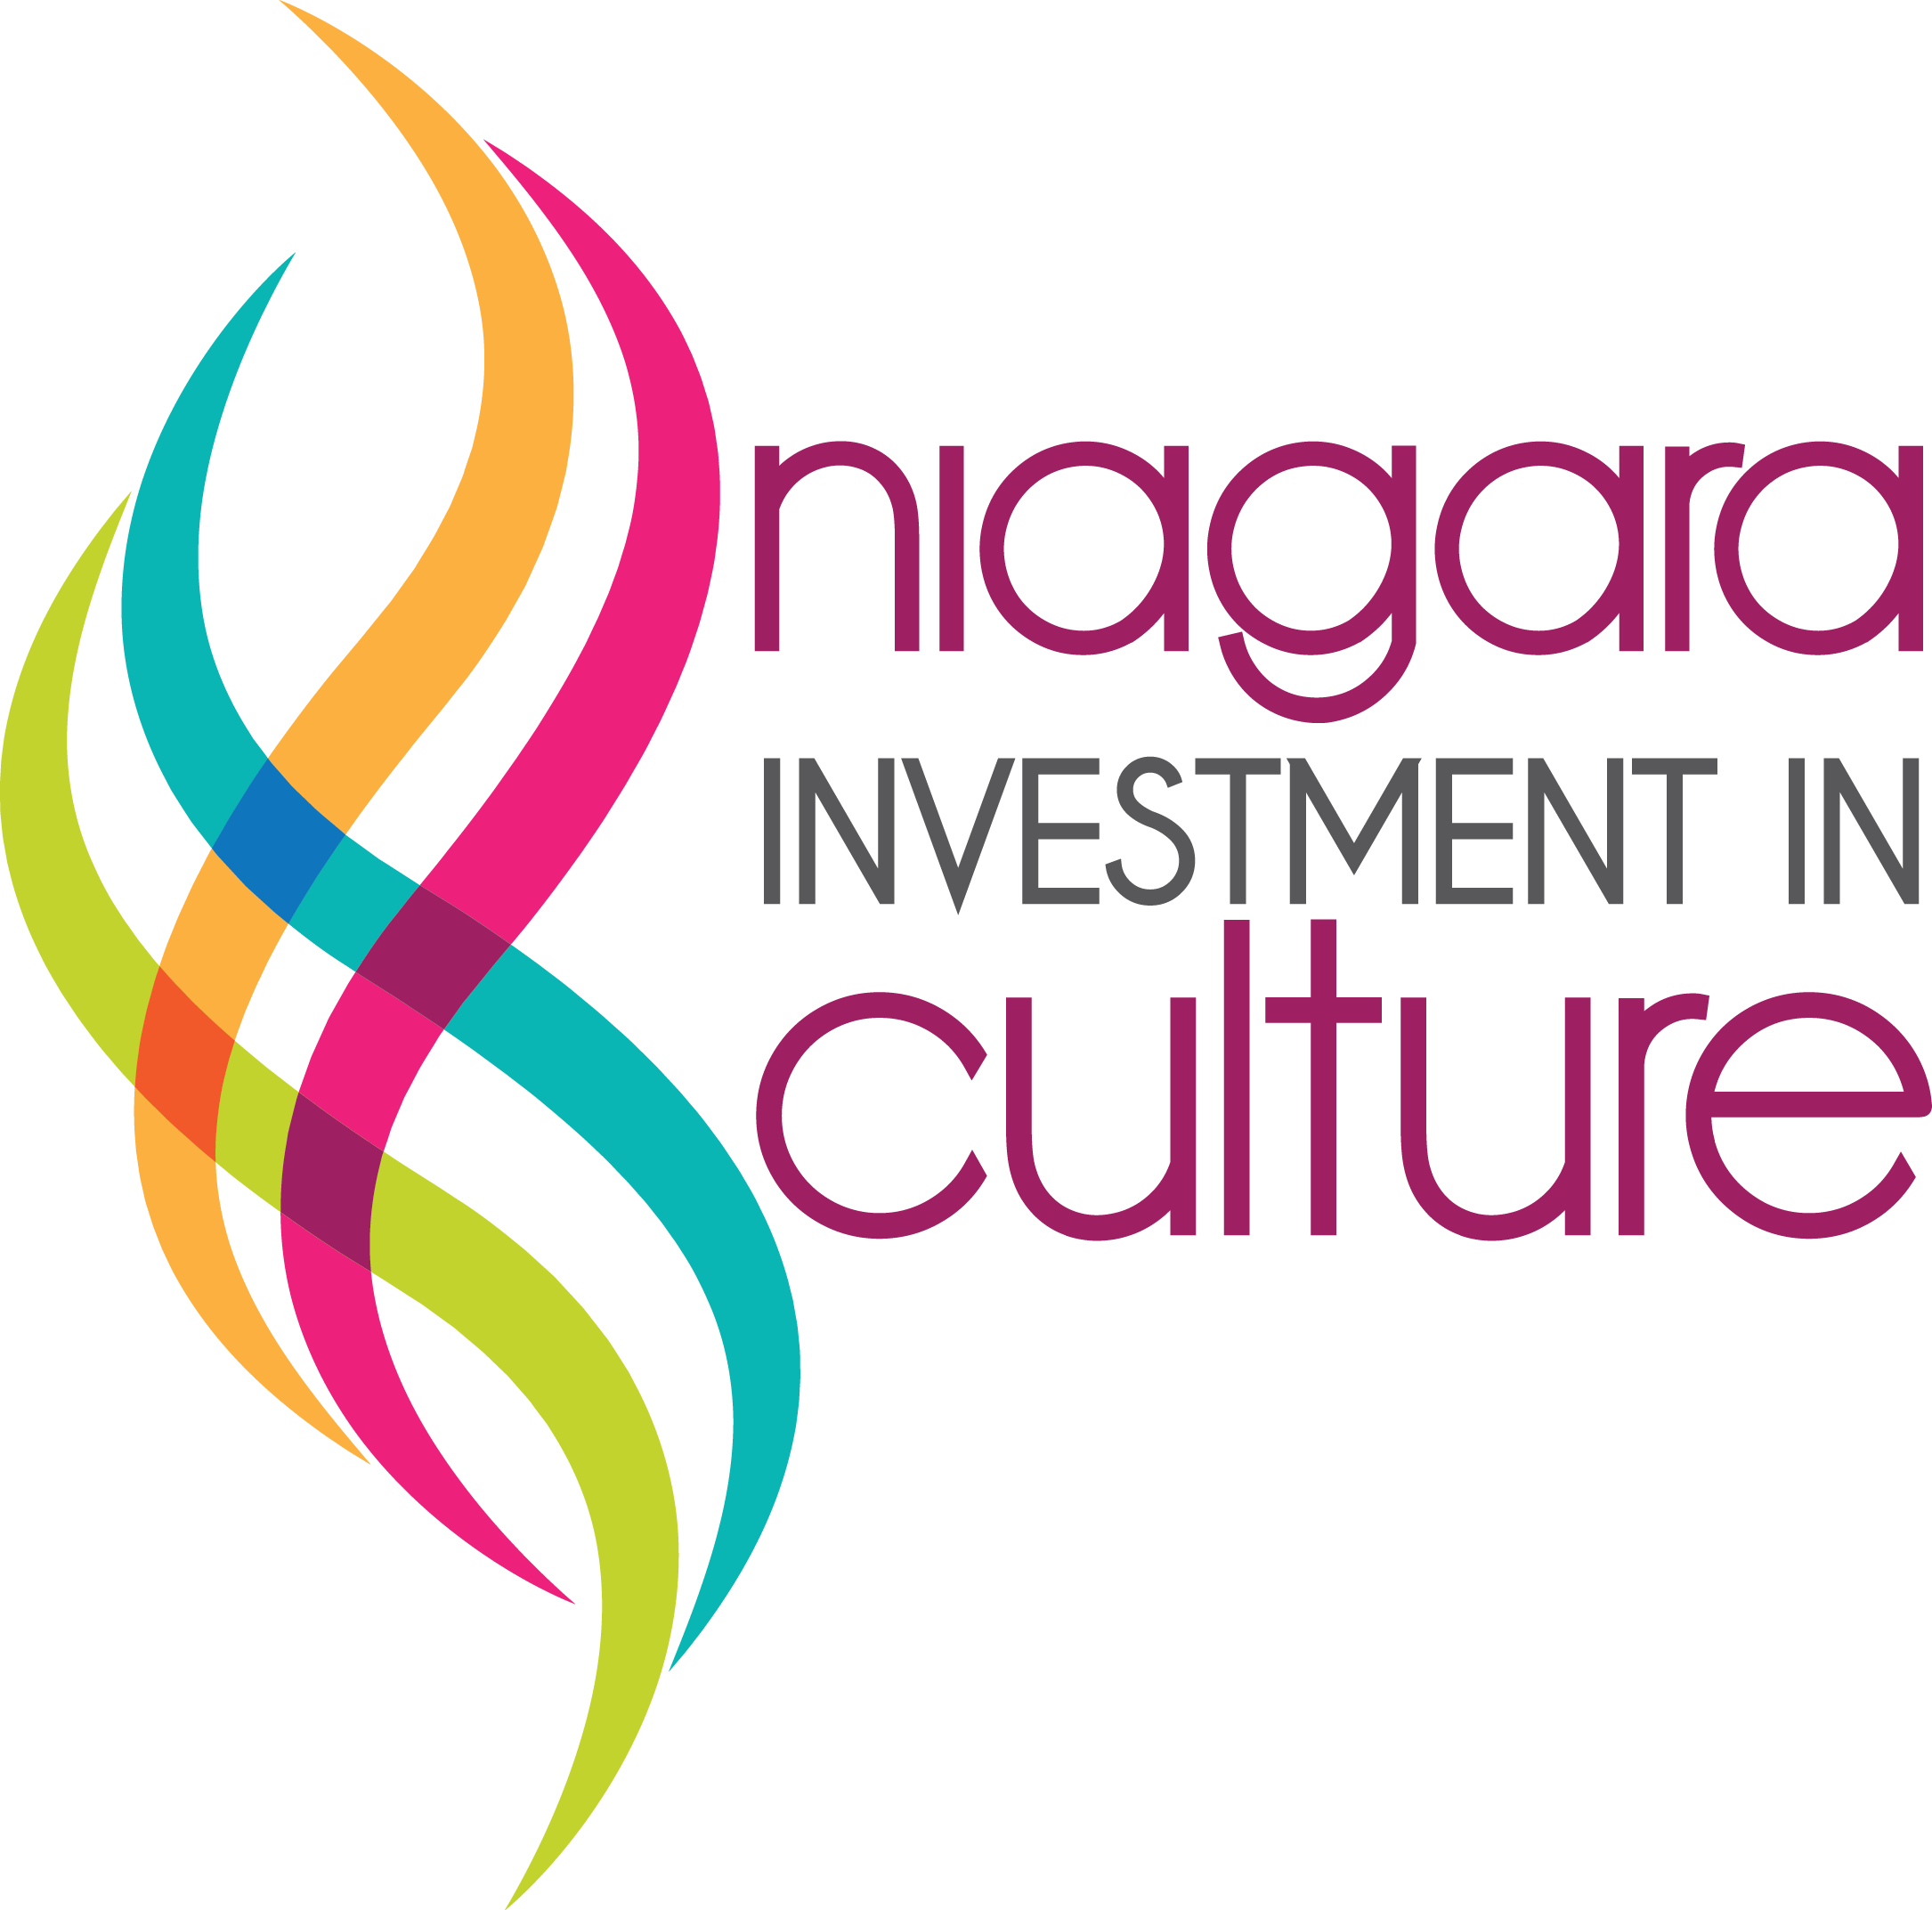 Niagara Investment in Culture